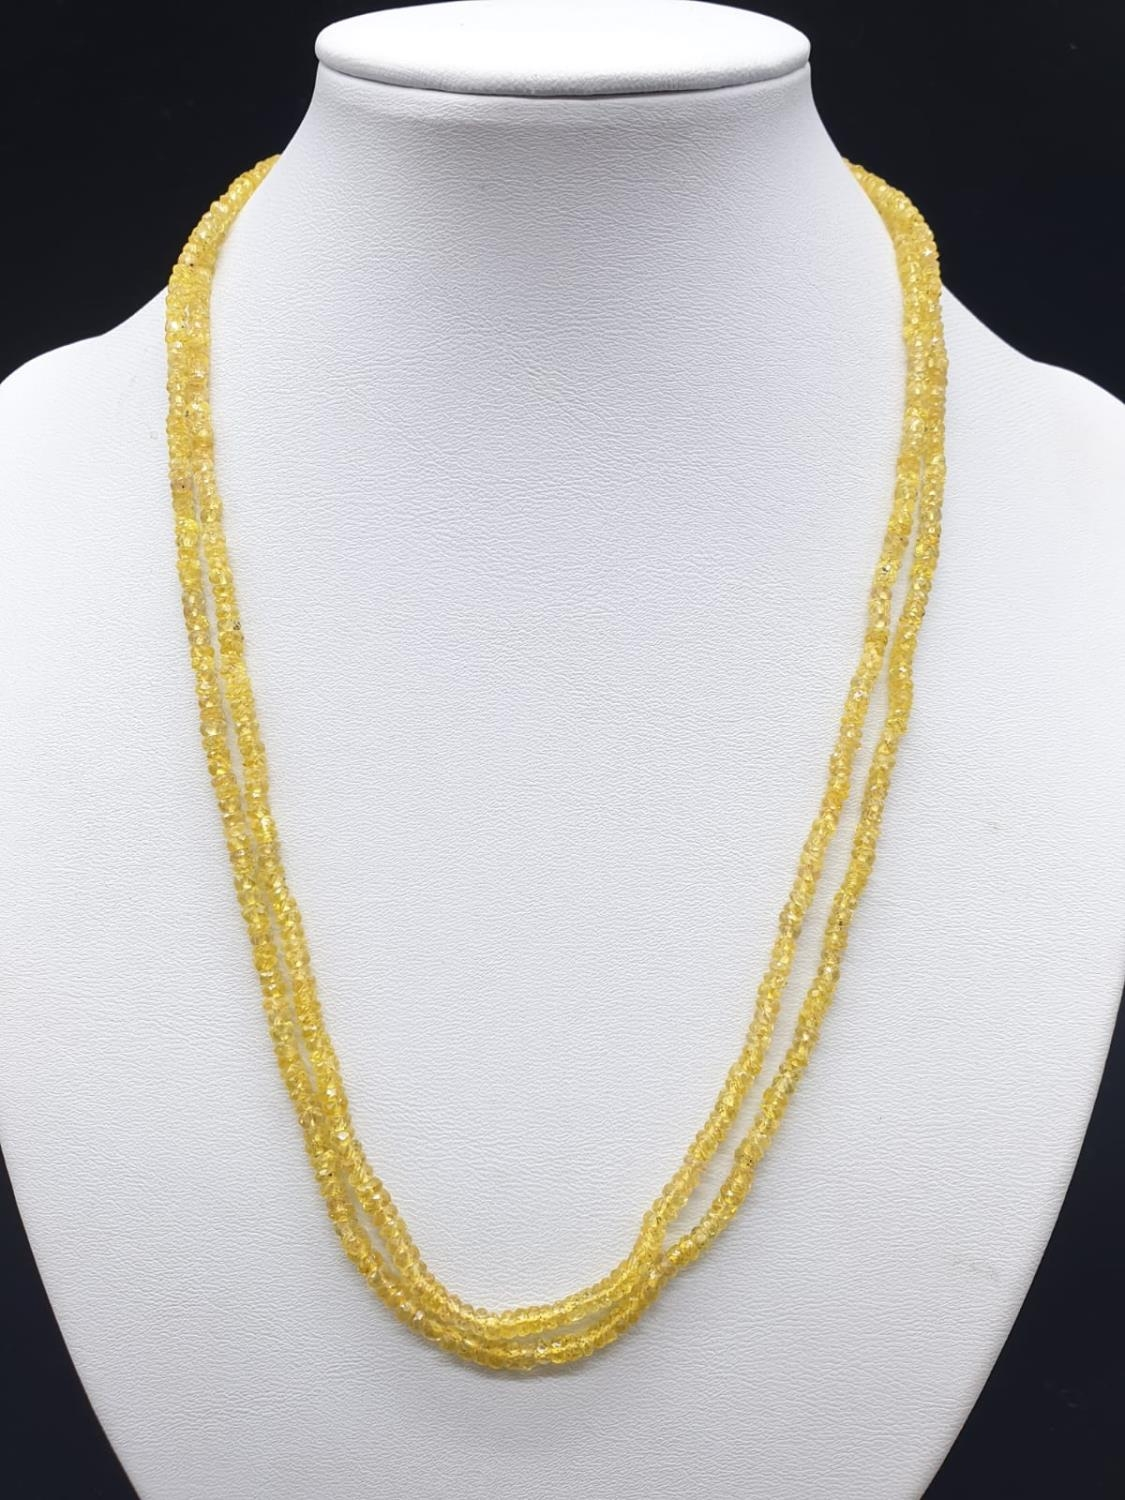 97.50 Cts Natural Yellow Sapphire gemstone beaded necklace. - Image 2 of 5